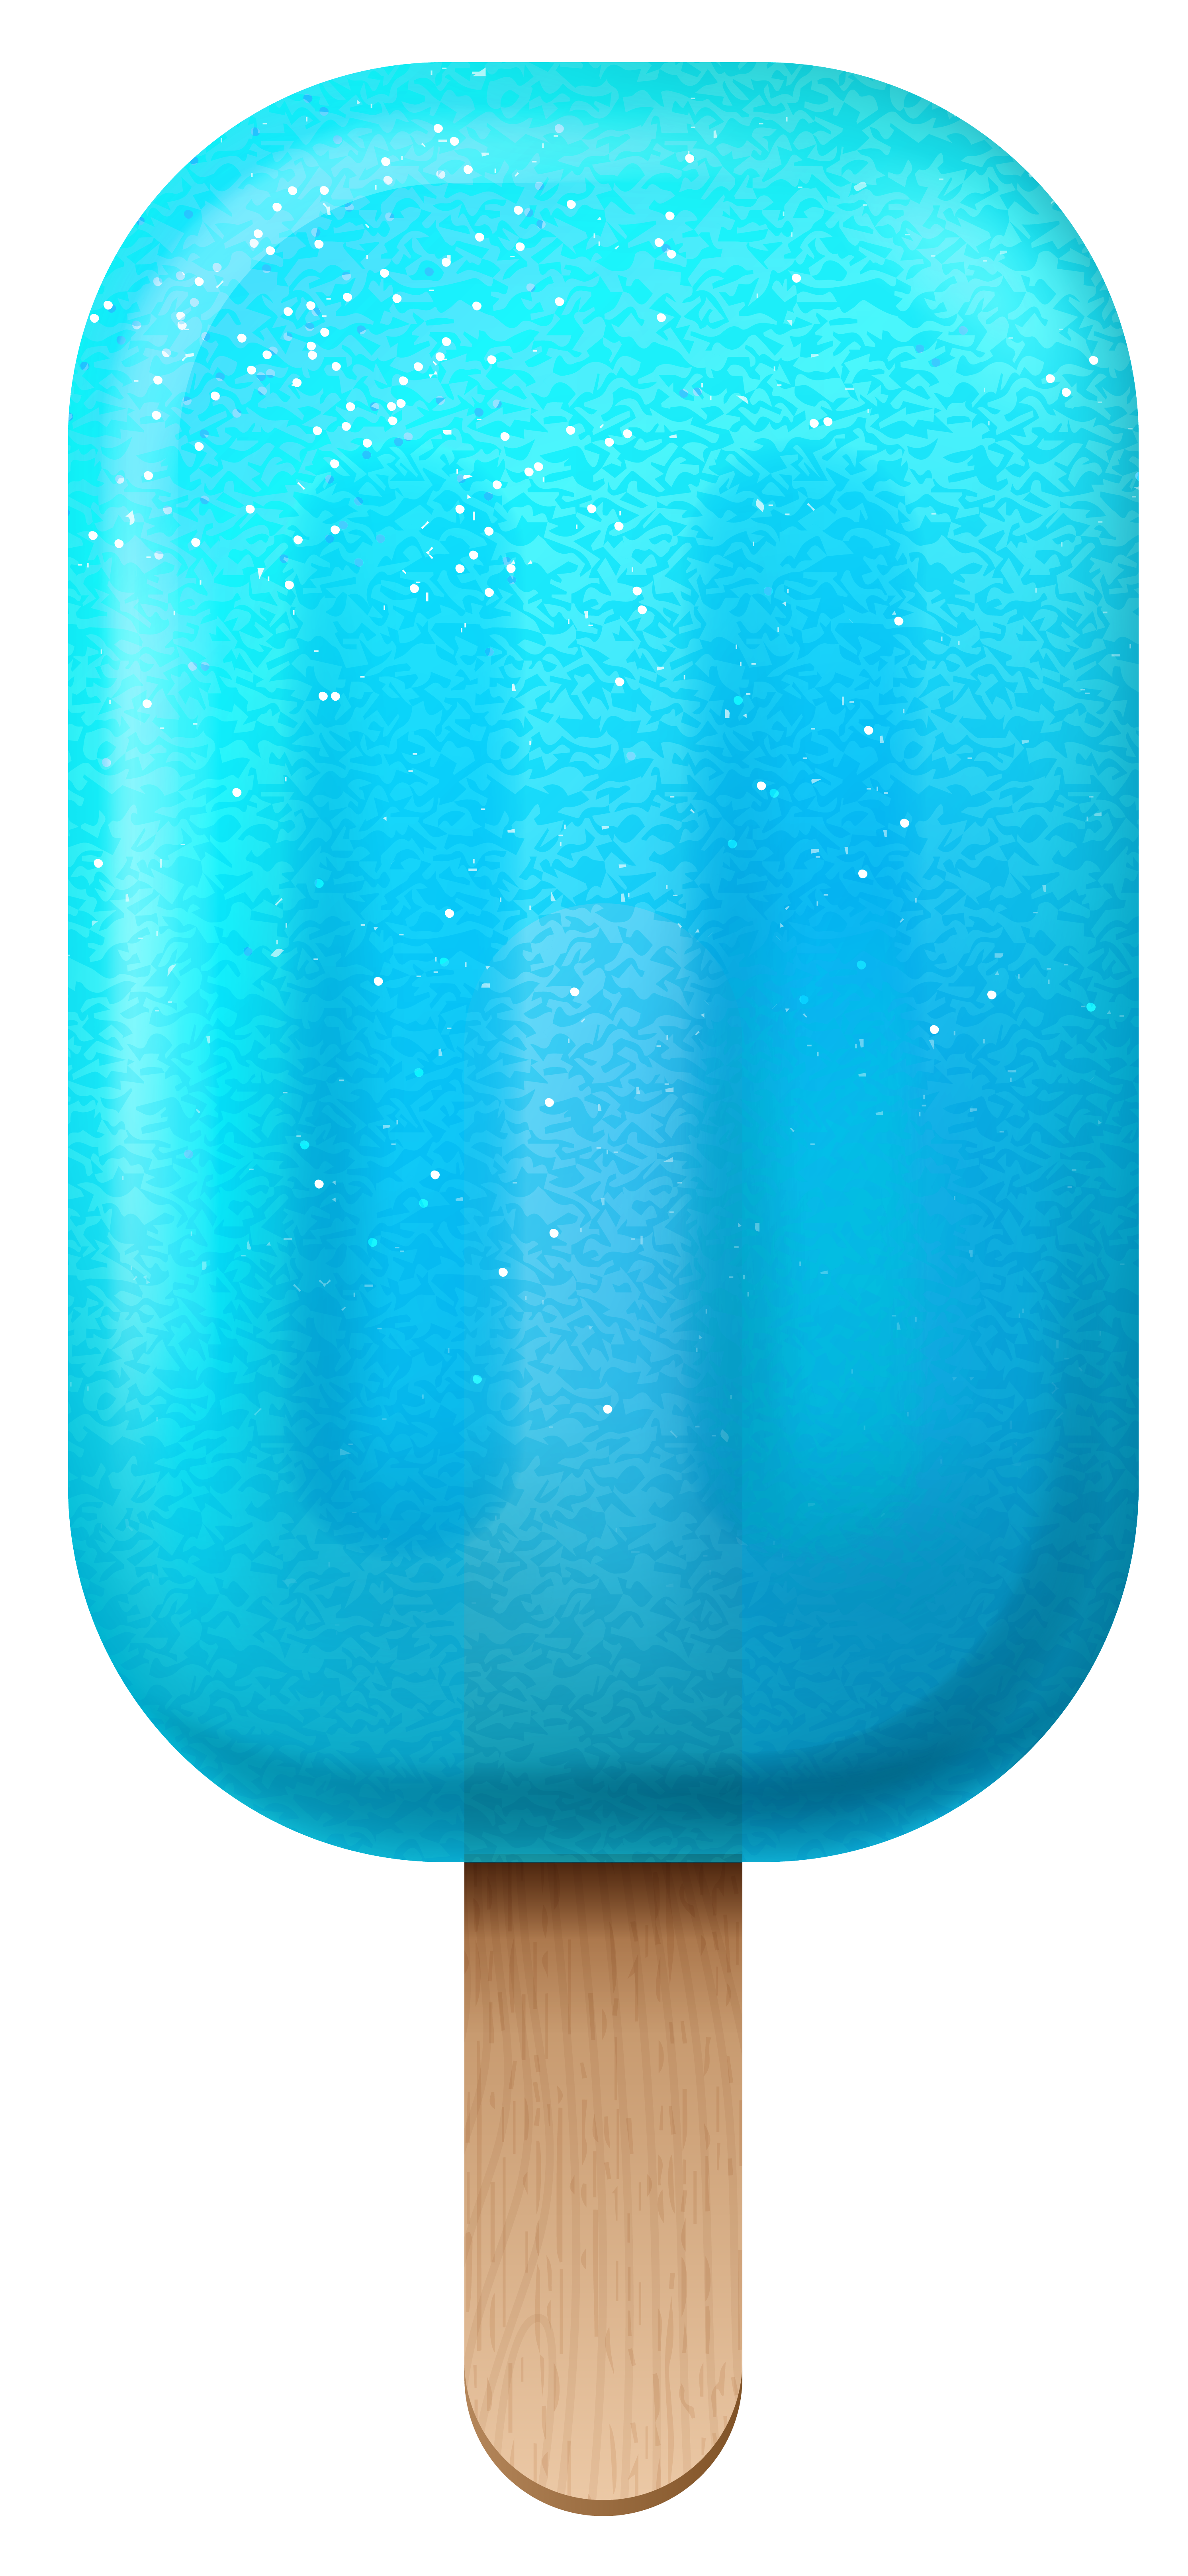 Blue Ice Cream PNG Clipart Image.